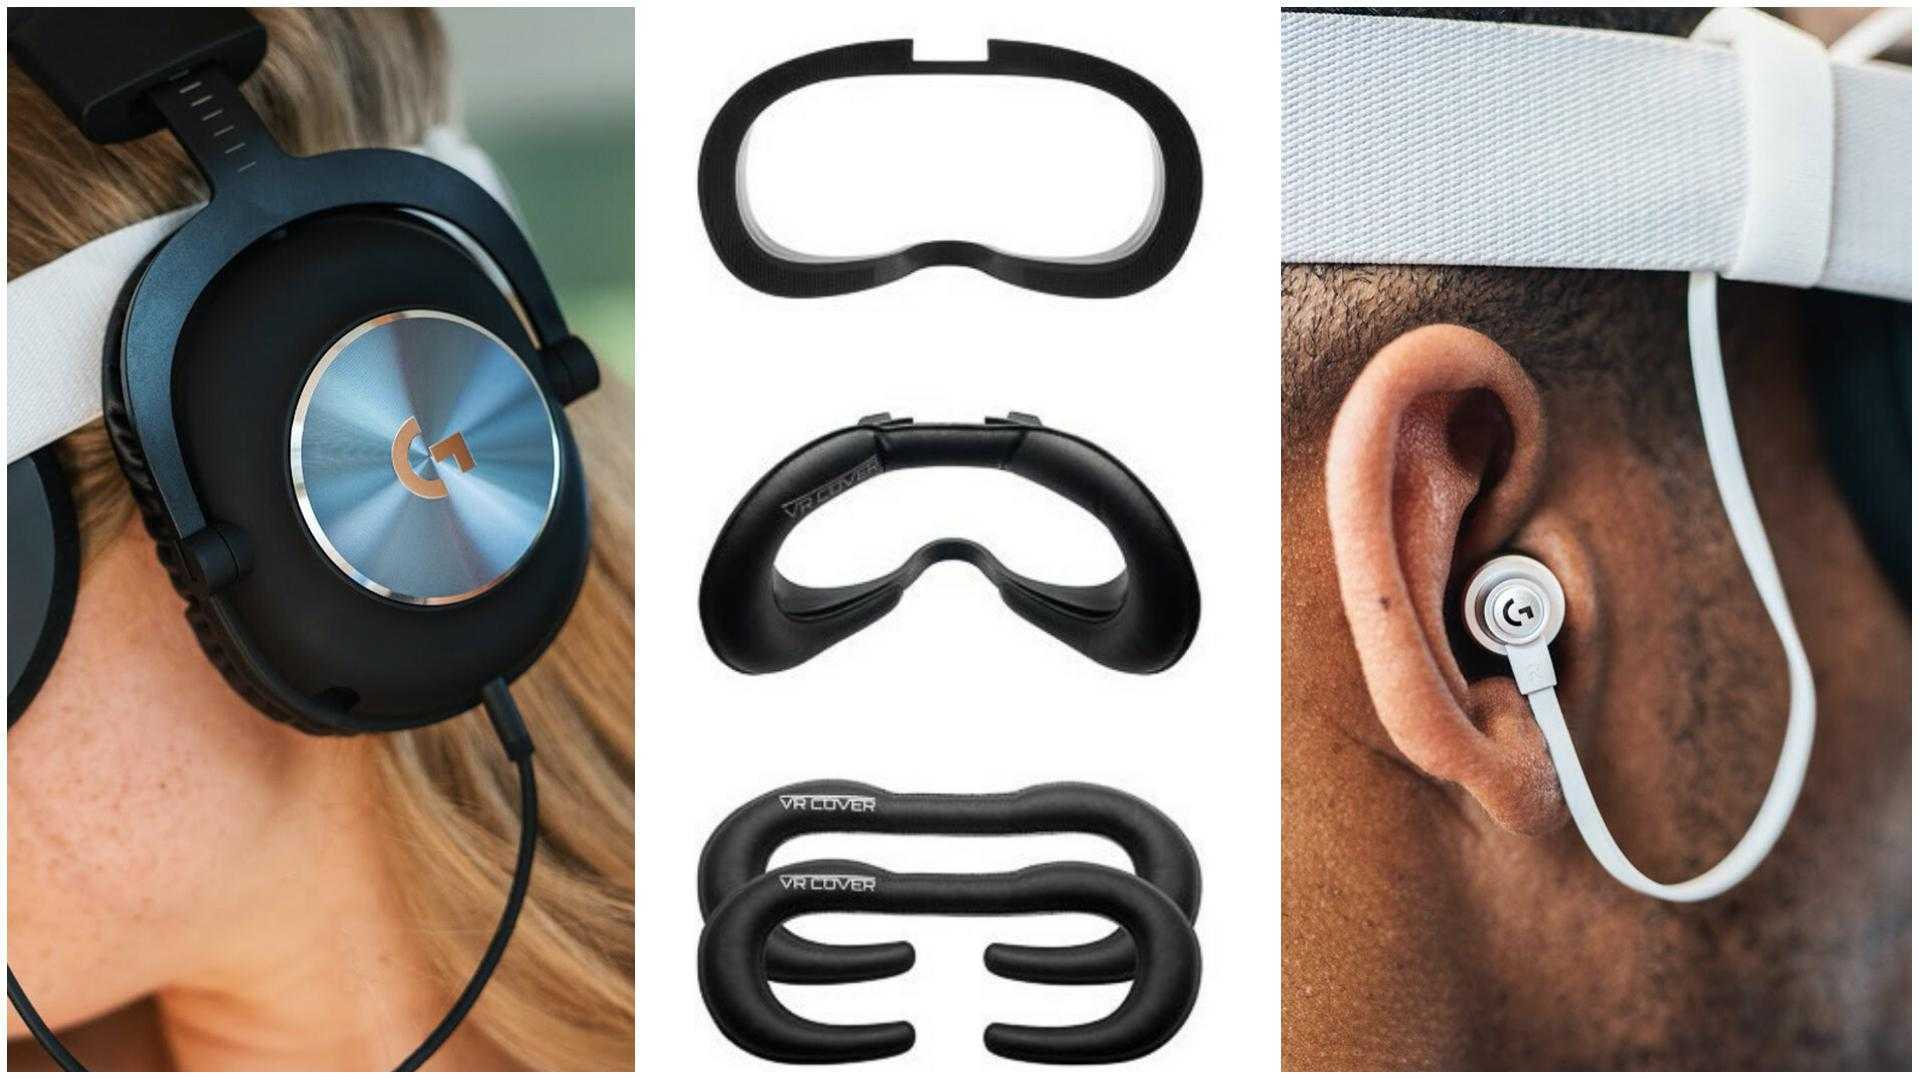 Quest 2 Third-party Accessories: Two Logitech Headphones, VR Cover Facial Interface